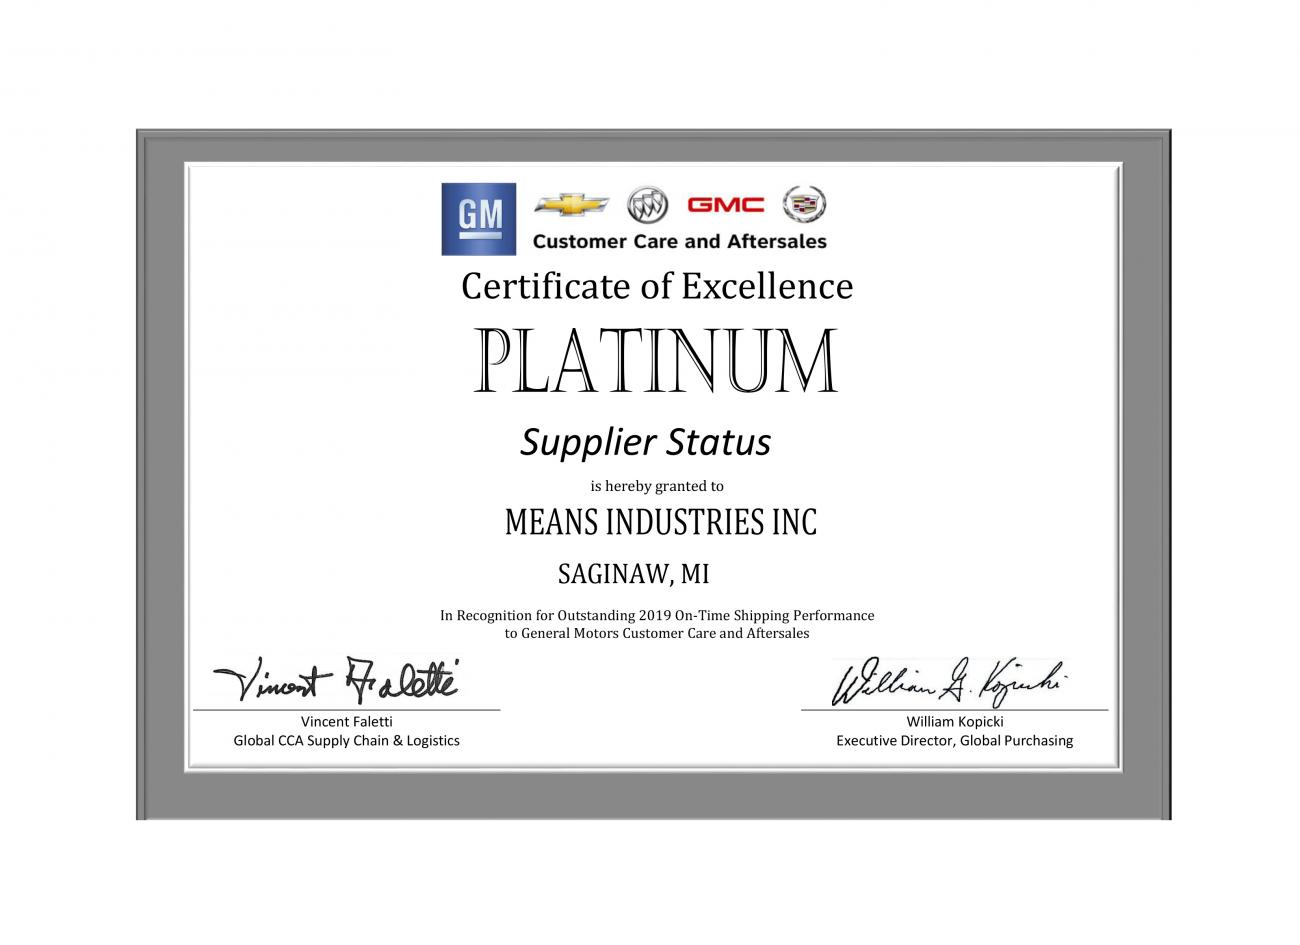 Means Industries Certificate of Excellence